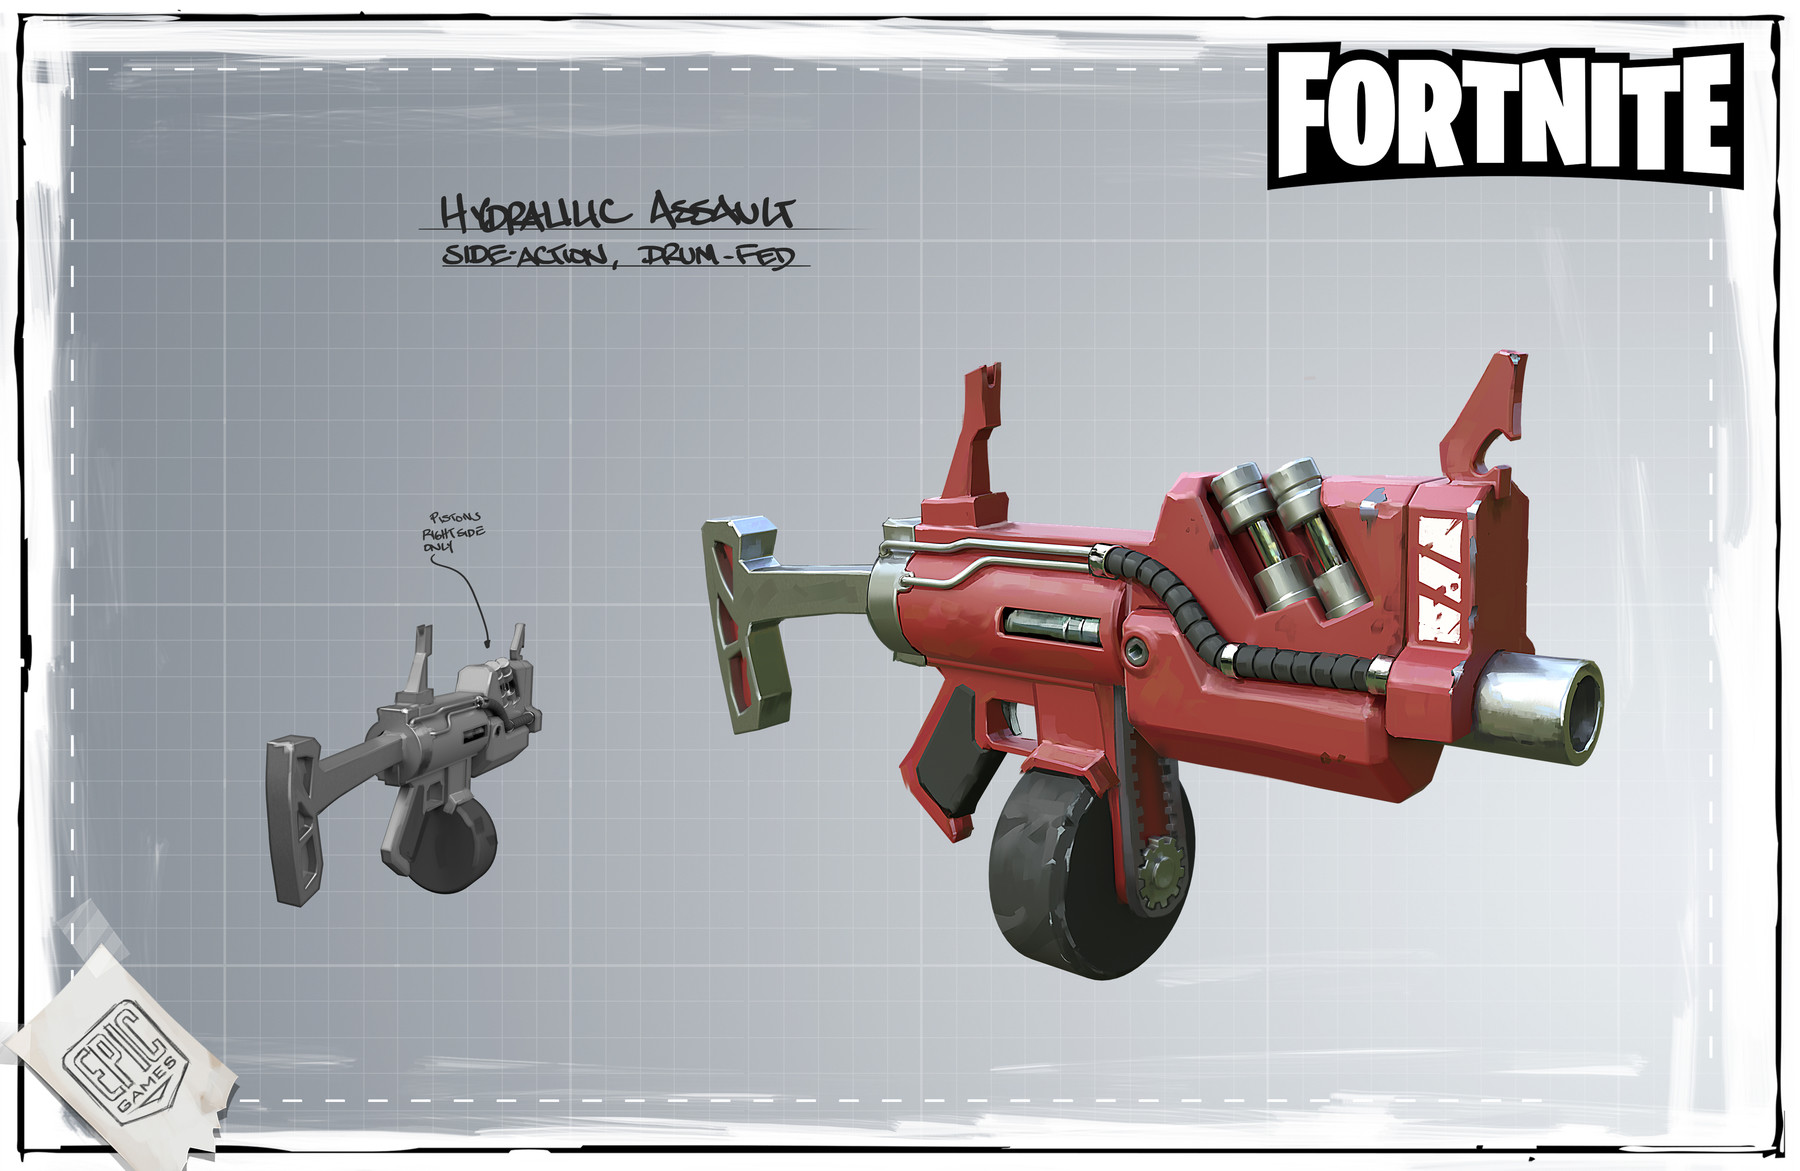 ArtStation Fortnite Hydraulic Weapons Mark Behm